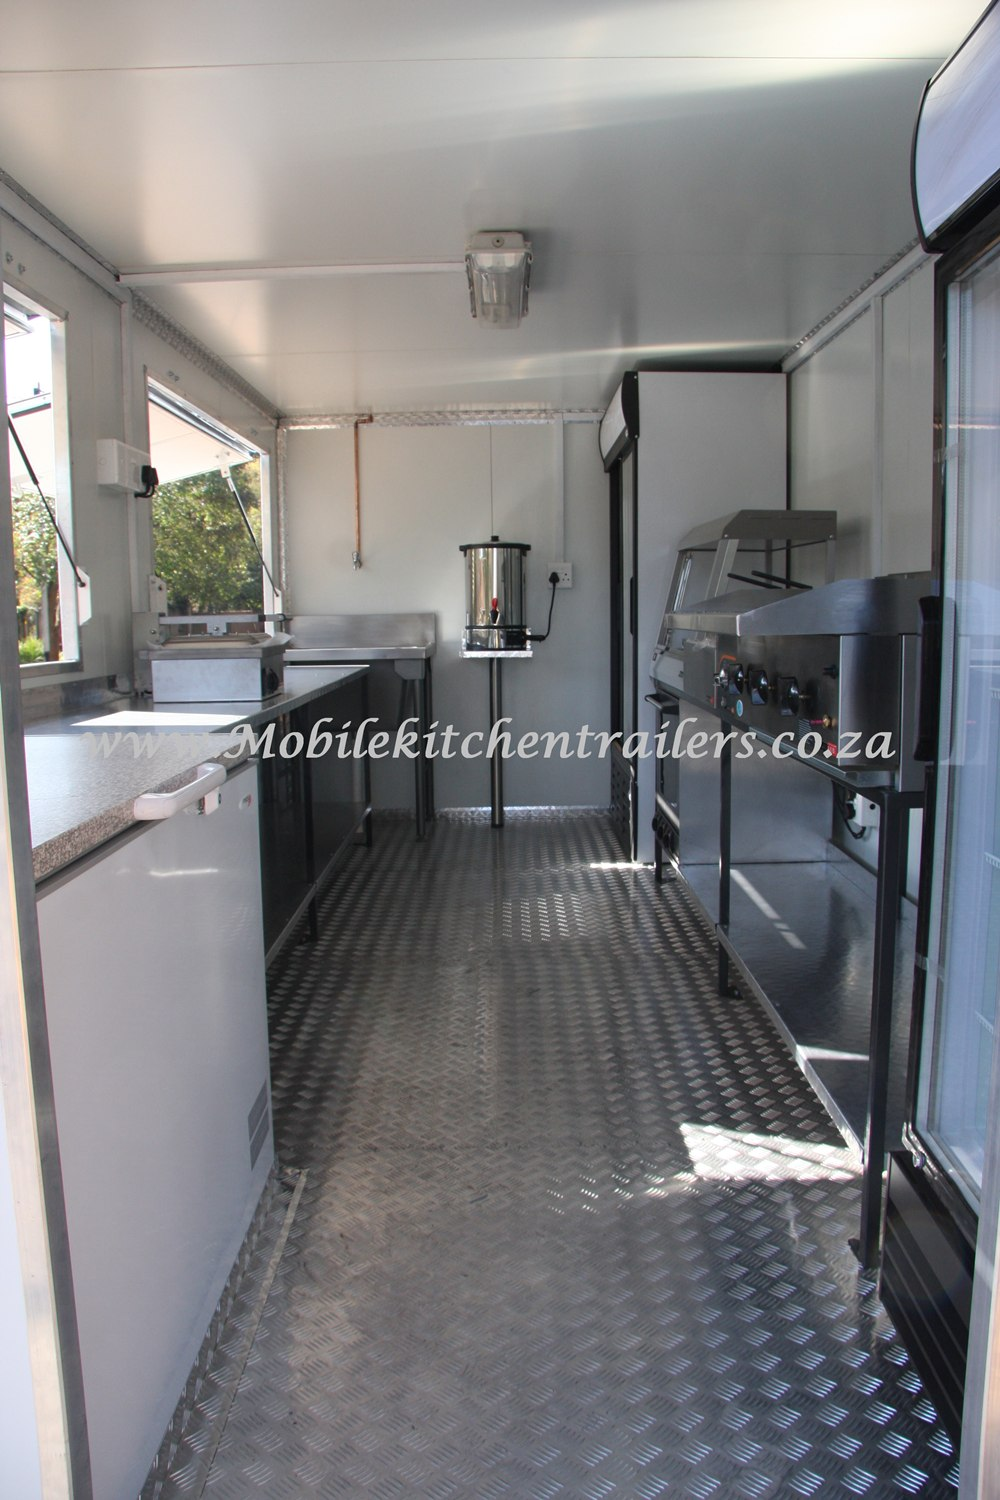 Mobile Catering Trailer Double Deluxe Model 104